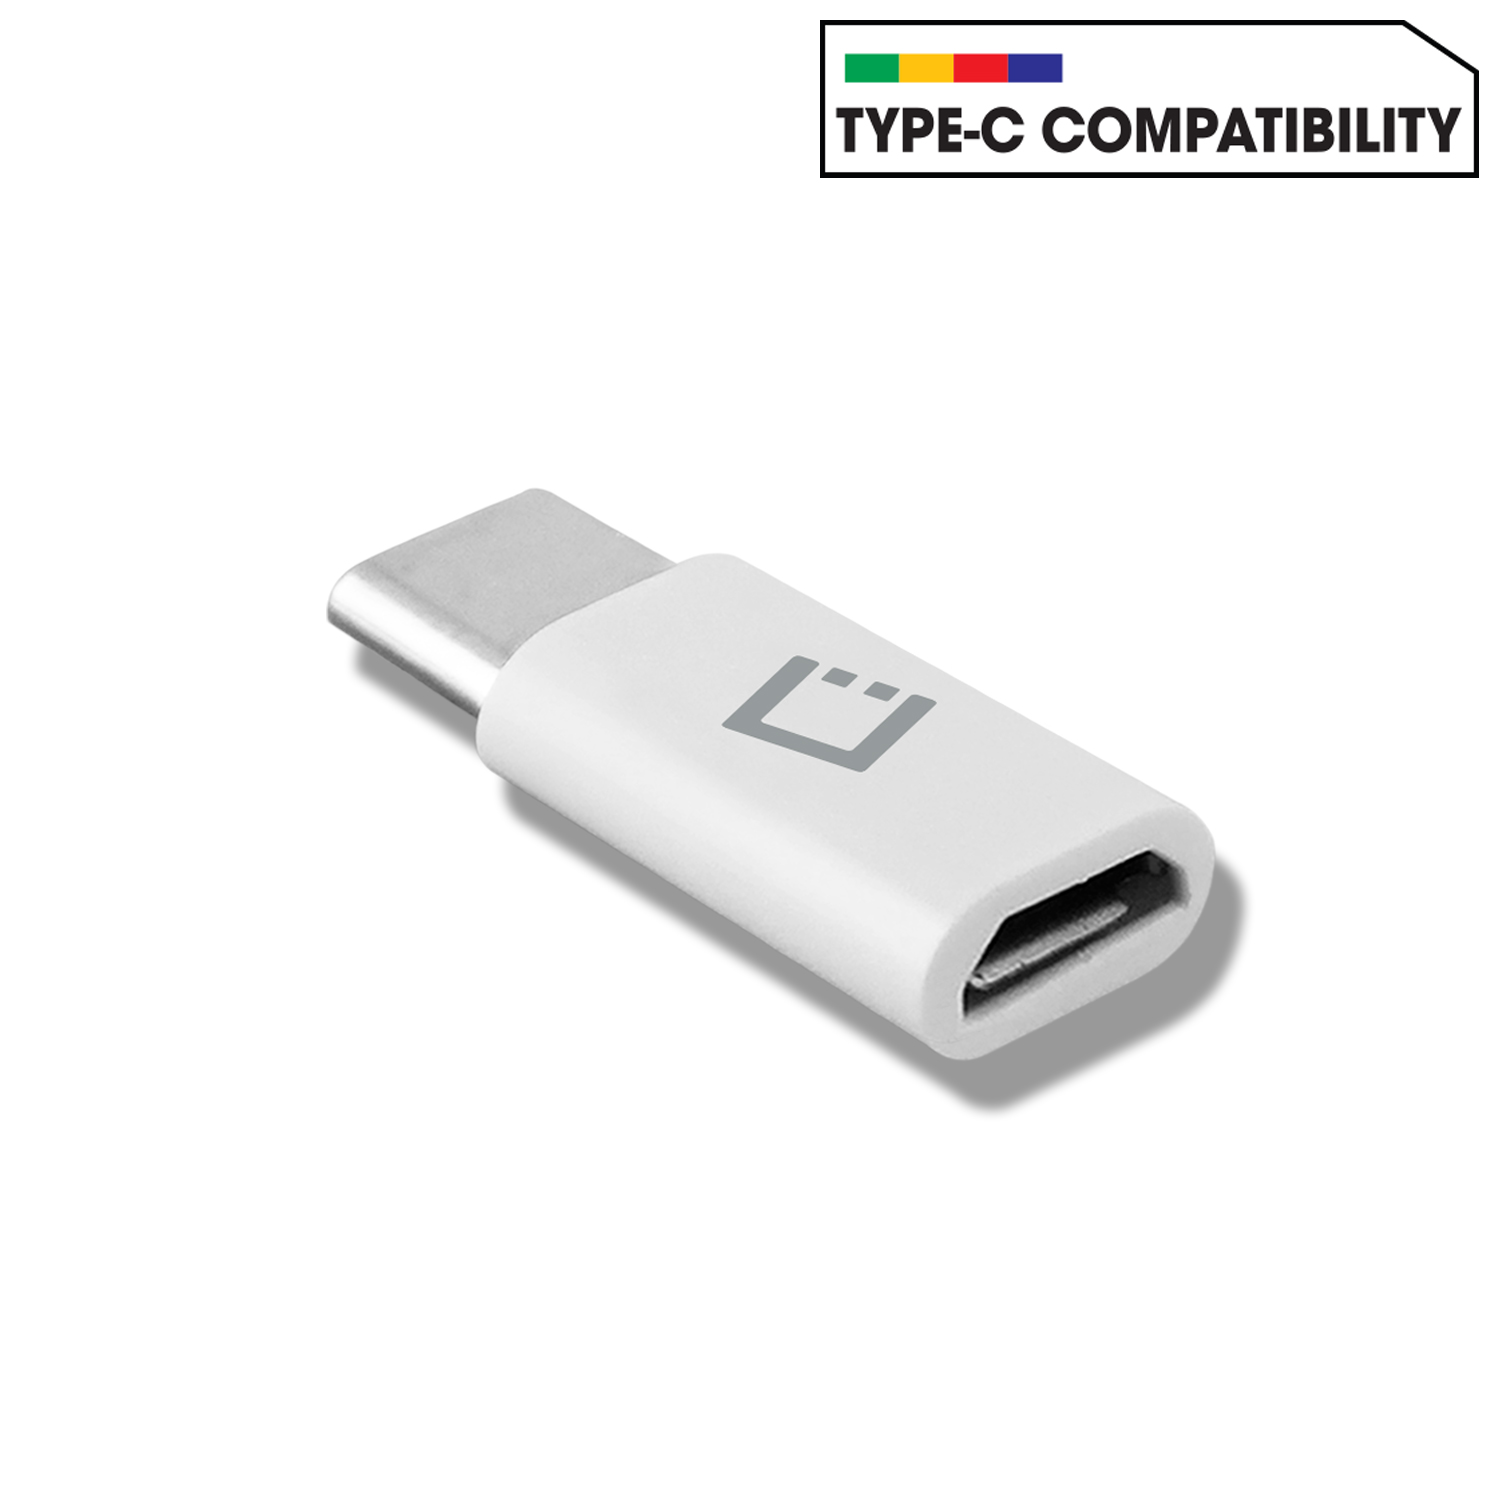 LG Stylo 4 MicroUSB to USB Type-C Adapter White Pack Of 4